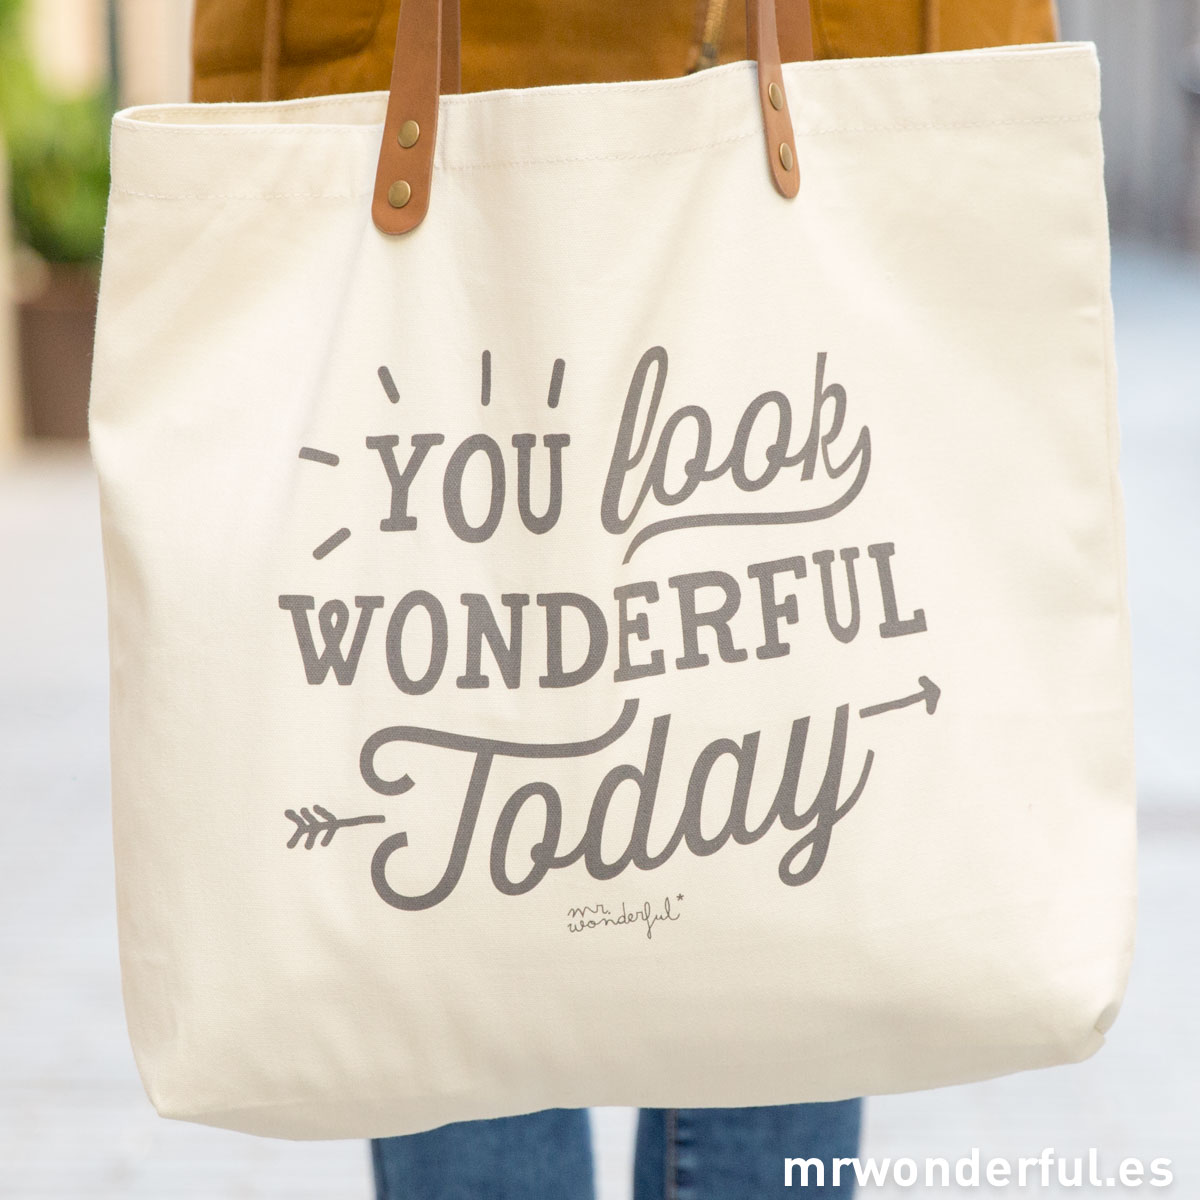 mrwonderful_totebag-you-look-wonderful-today-2015-5